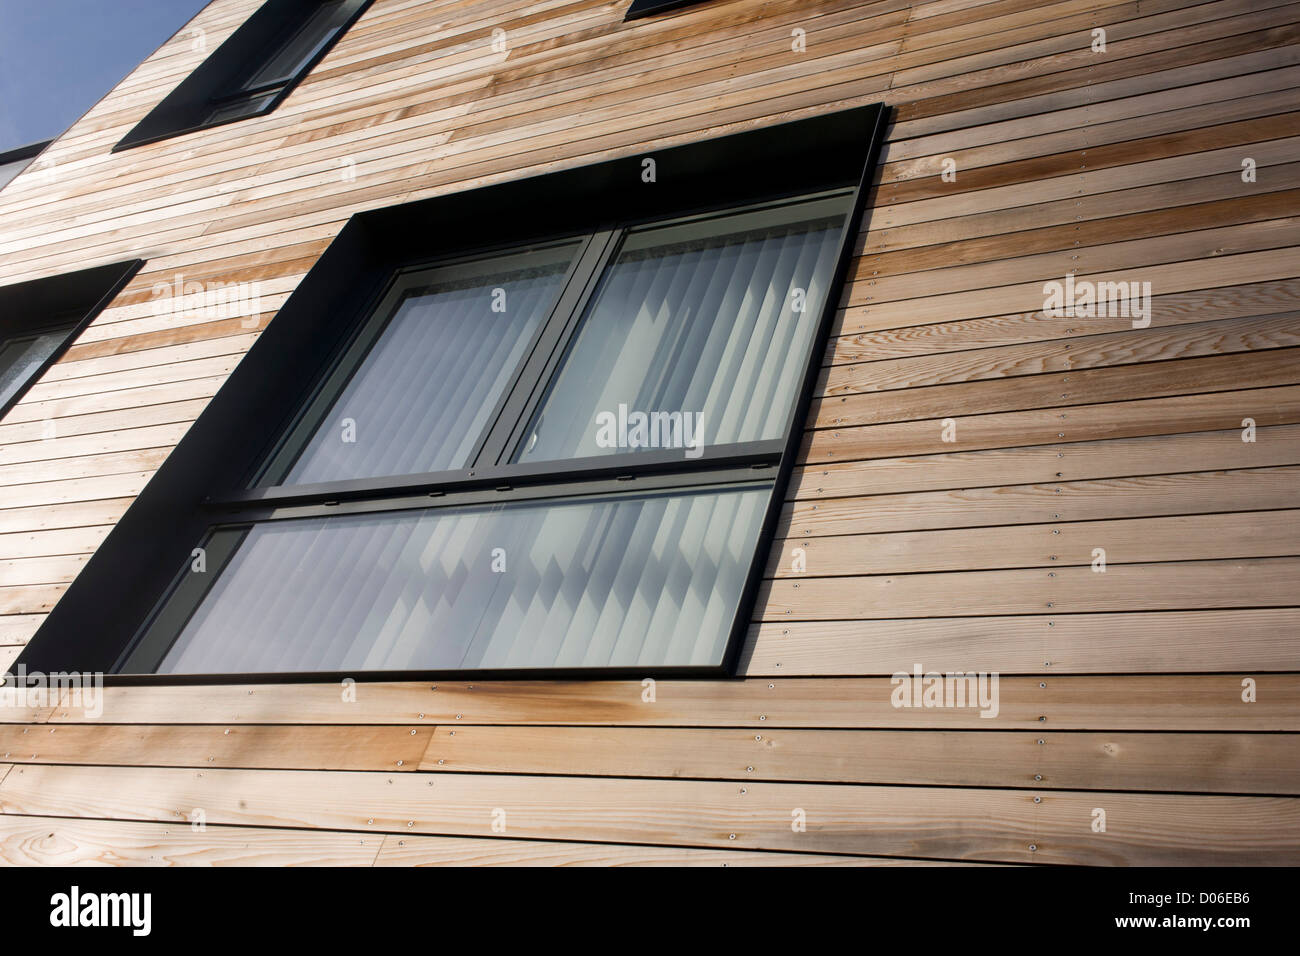 Wood Wall Panels Stock Photos & Wood Wall Panels Stock Images - Alamy